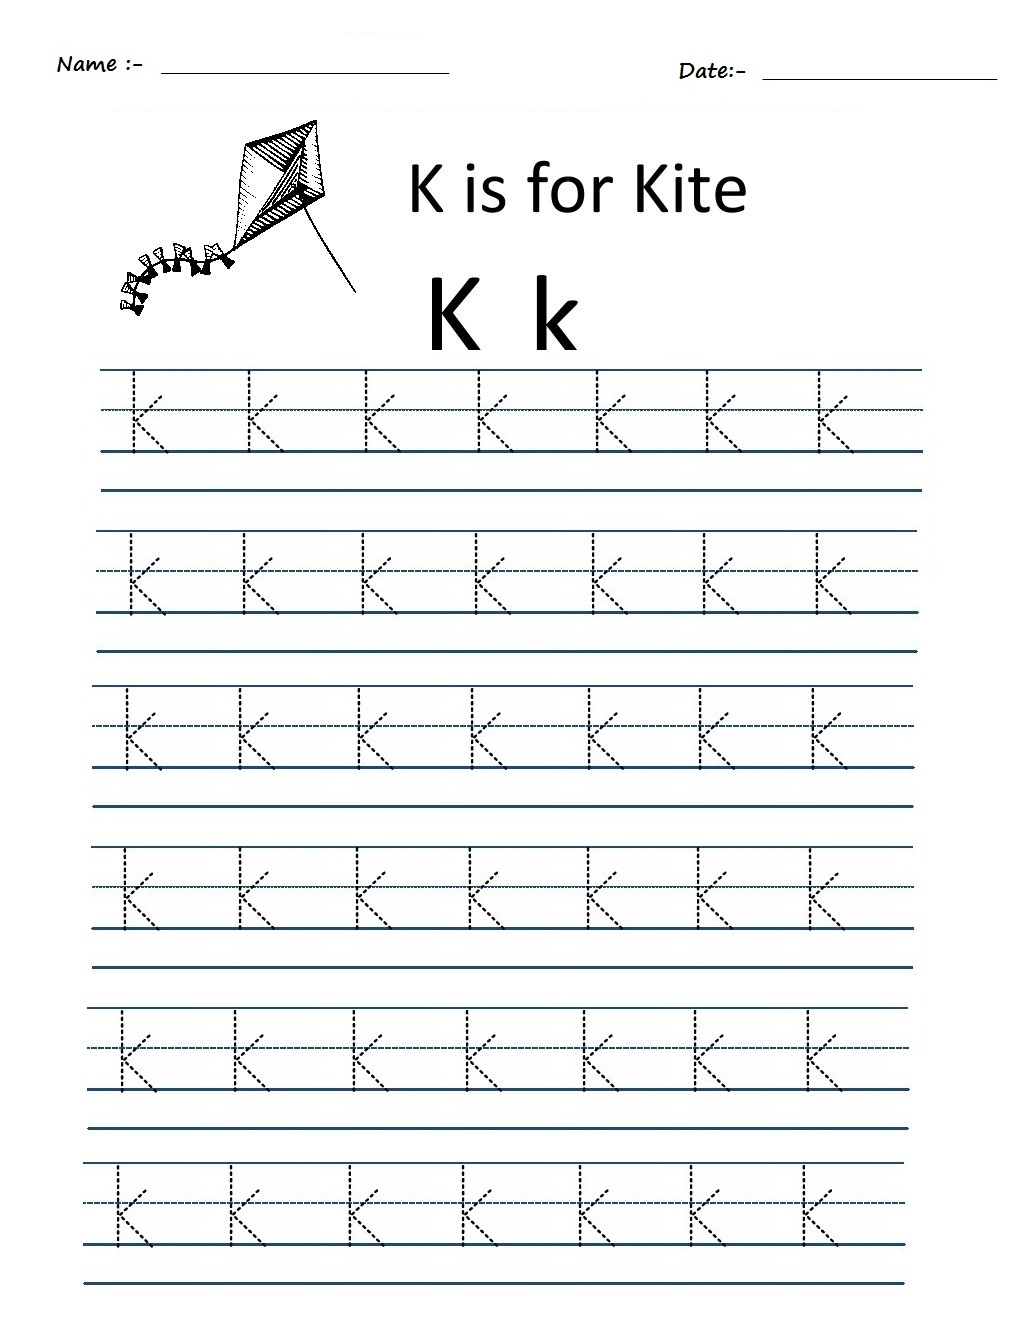 kindergarten worksheets alphabet tracing worksheets k. Black Bedroom Furniture Sets. Home Design Ideas